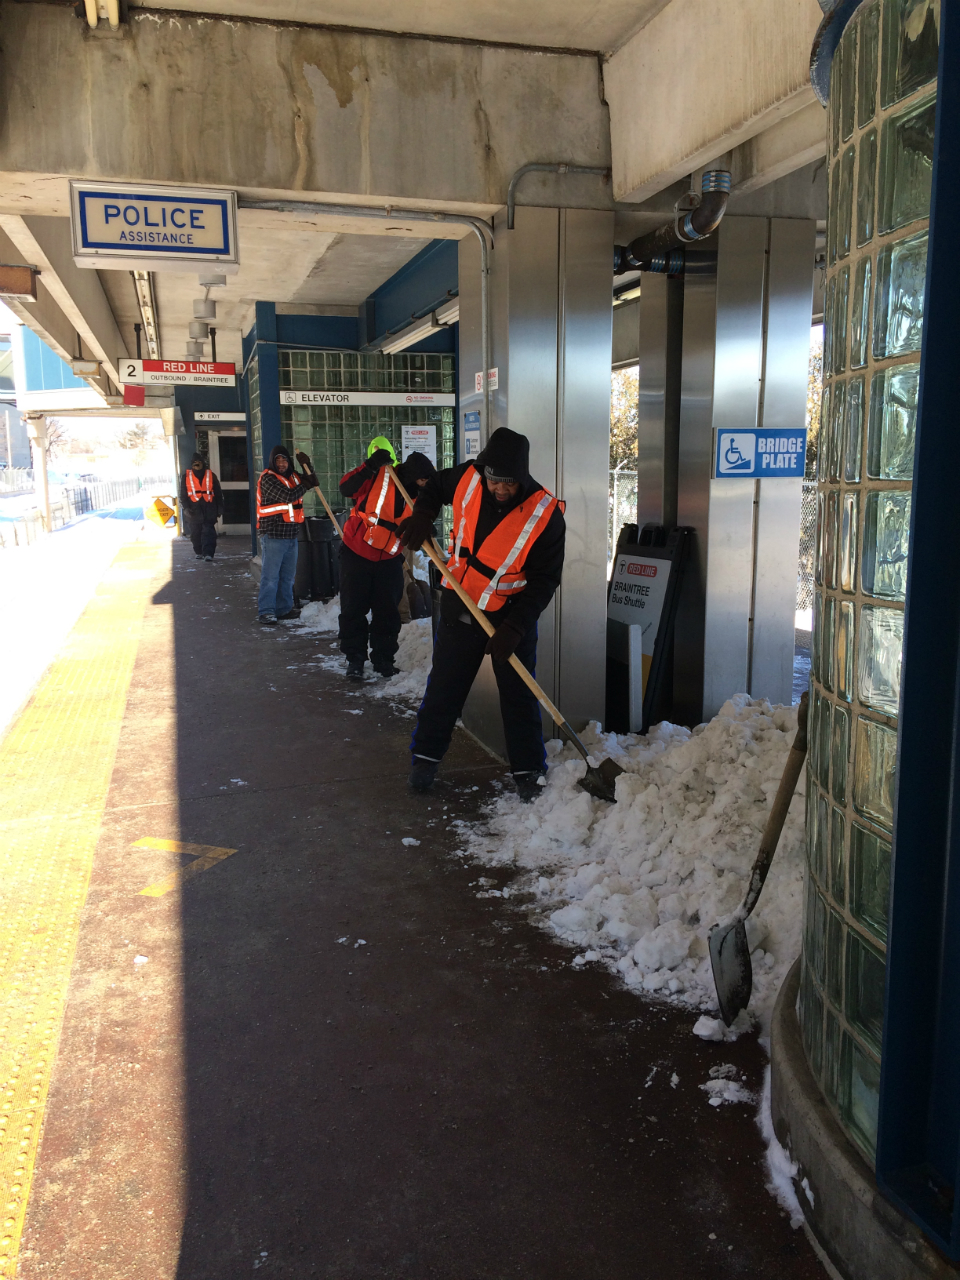 north-quincy-shoveling-crew-orange-vests_0.jpg